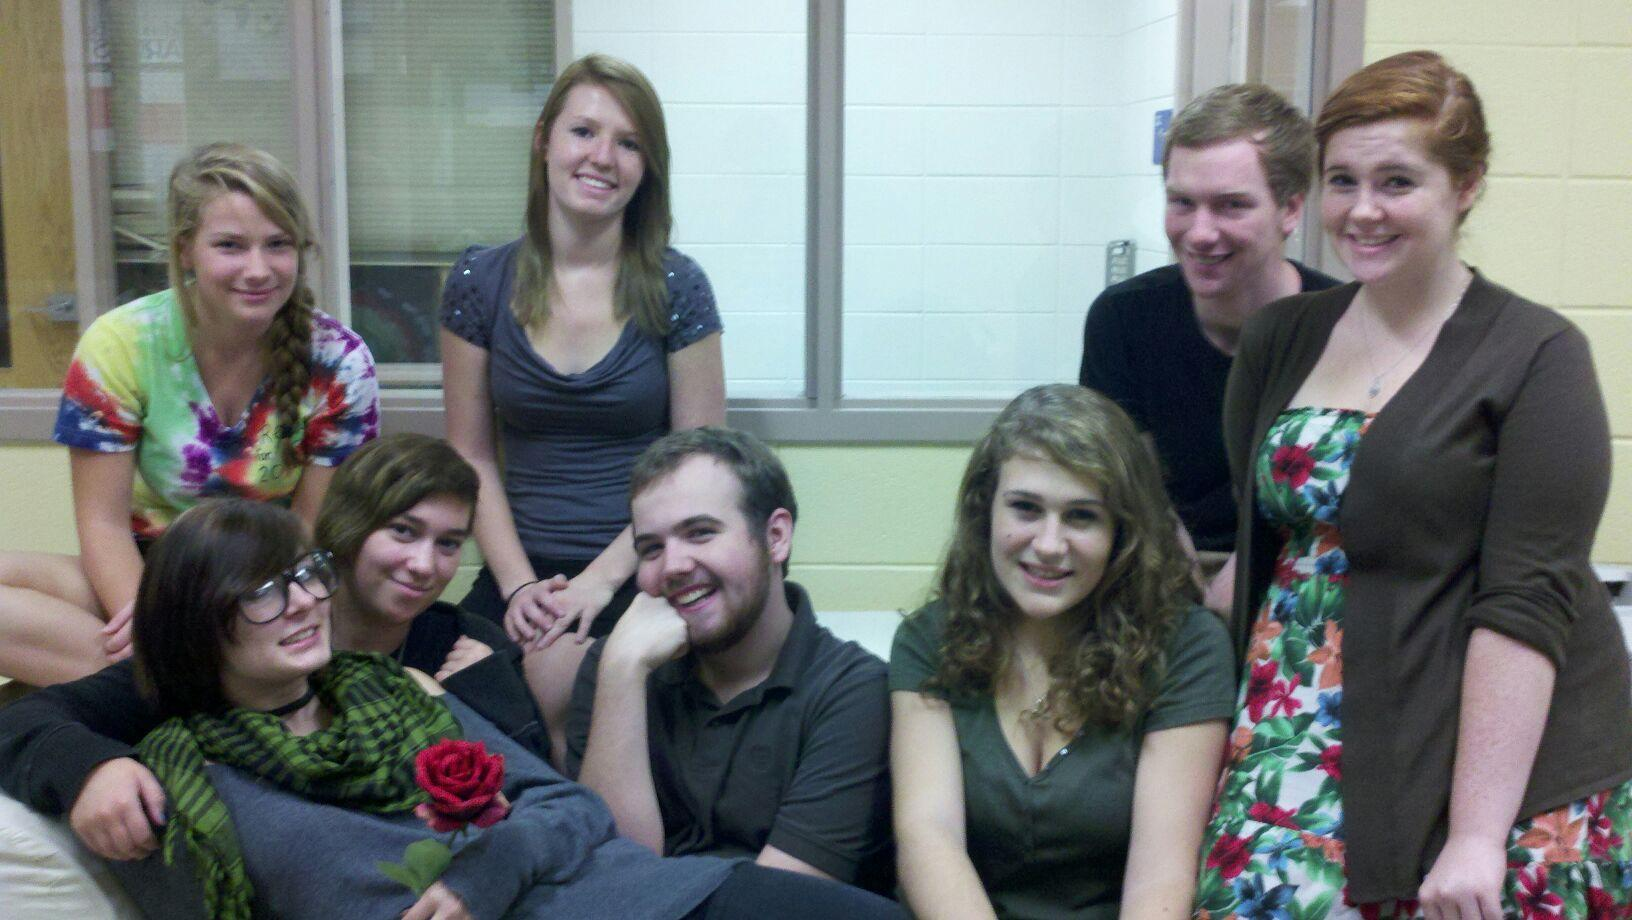 One Act Directors (from left to right) Mallory Turner, Mandy Plummer, Erin Fischer, Brooke Brown, Tim Joyce, Sarah Georgiou, Connor Downes, Cristal Willis